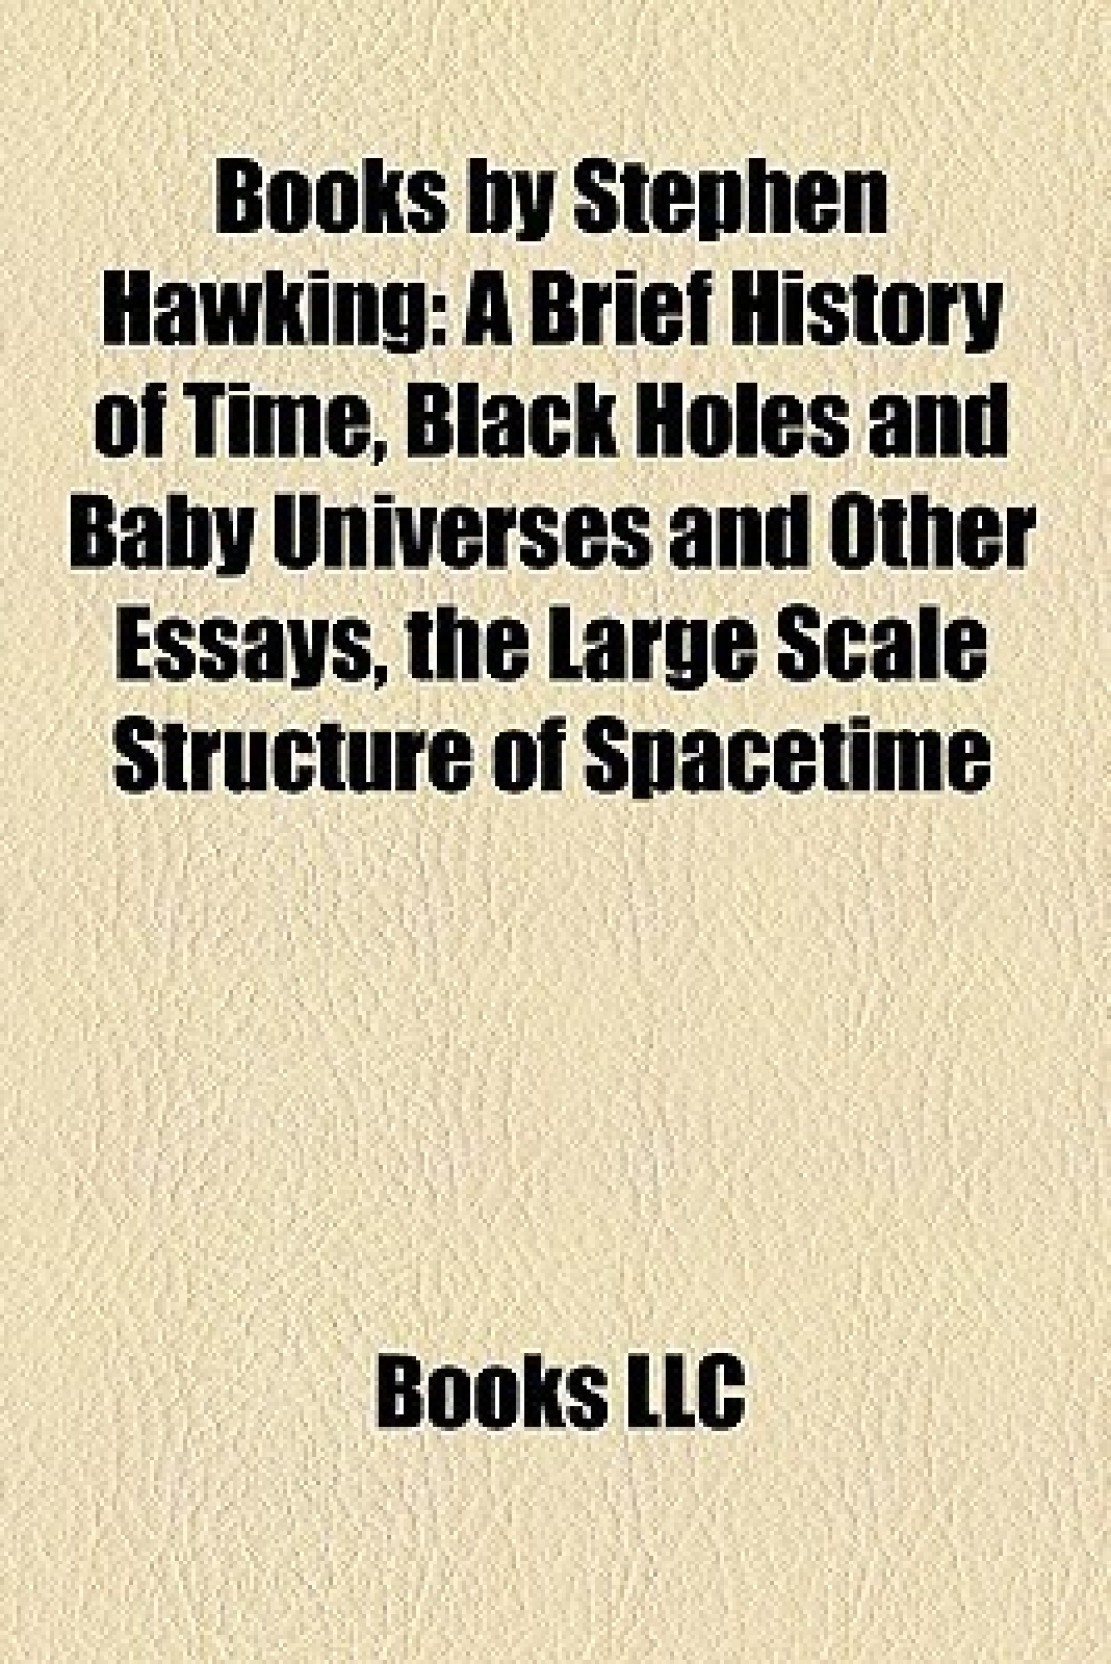 021 Books By Stephen Hawking Study Guide Brief History Of Time Original Imaearv4shvqmzh7q90 Black Holes And Baby Universes Other Essays Essay Unique Review Ebook Free Download Amazon Full